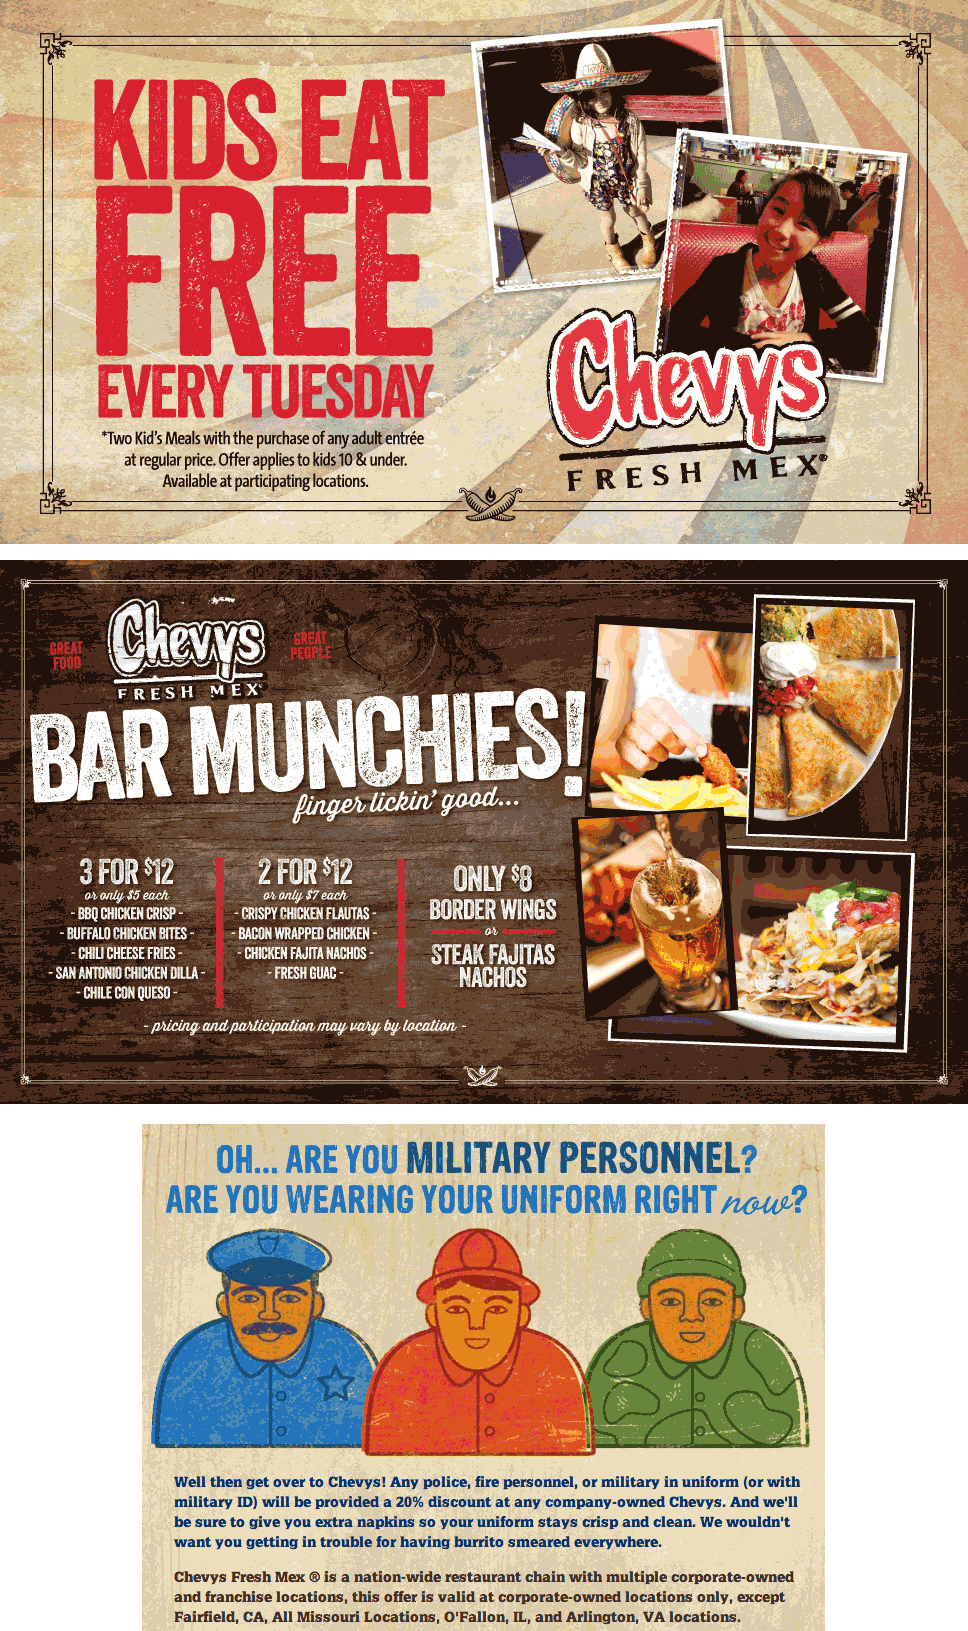 Chevys Coupon November 2017 Kids eat free Tuesdays at Chevys Fresh Mex